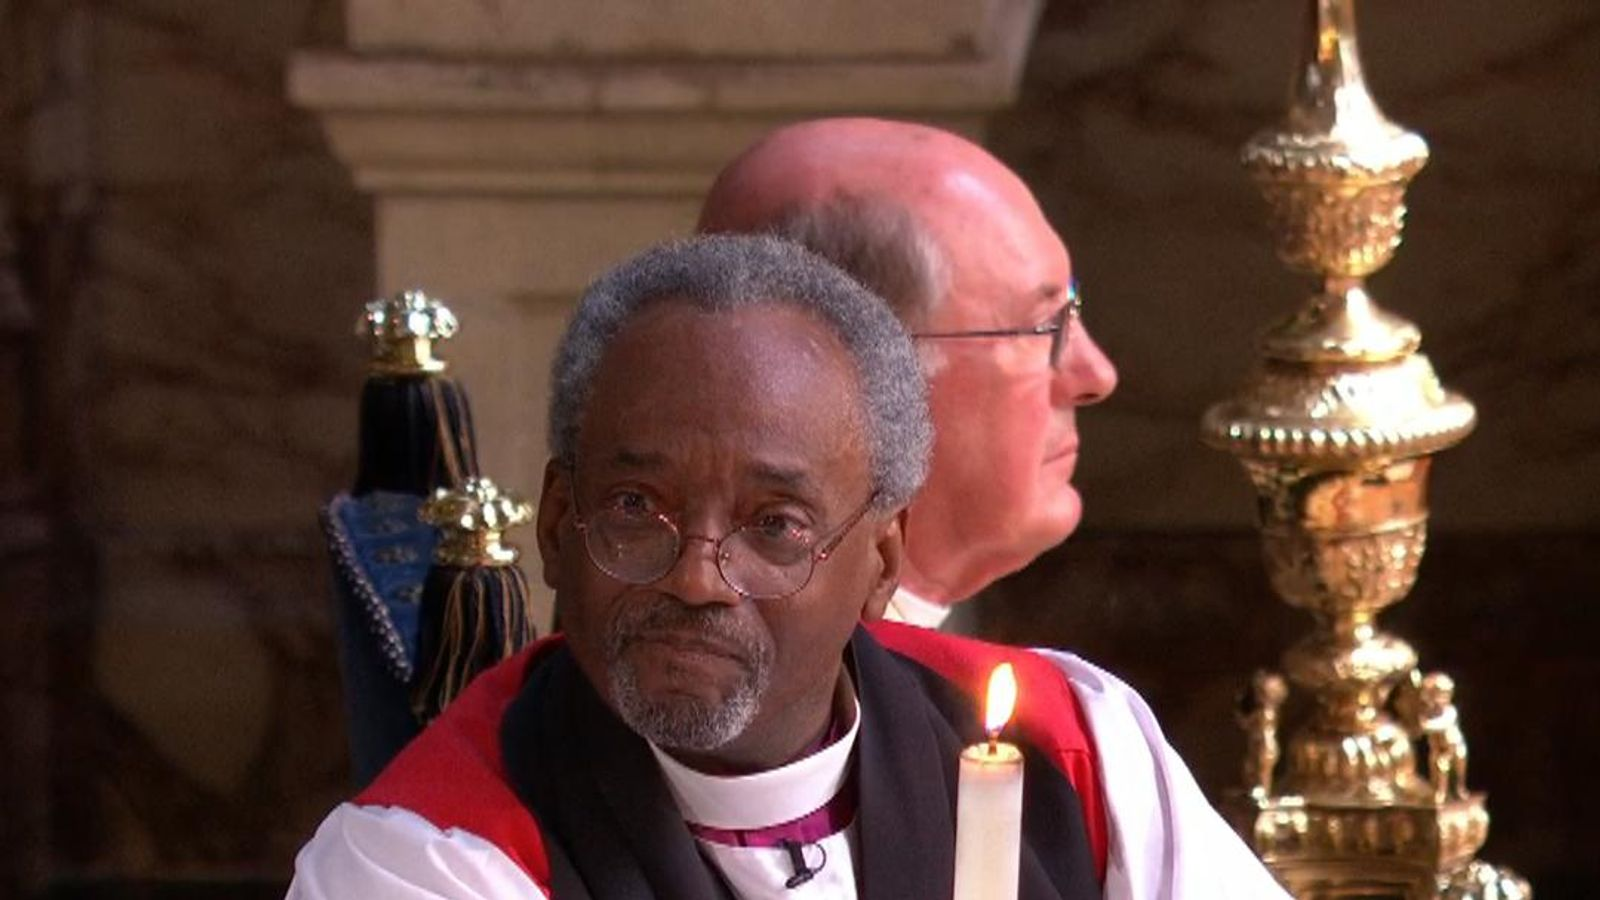 Michael Curry Royal Wedding.Michael Curry The Passionate Bishop Who Dazzled The Wedding